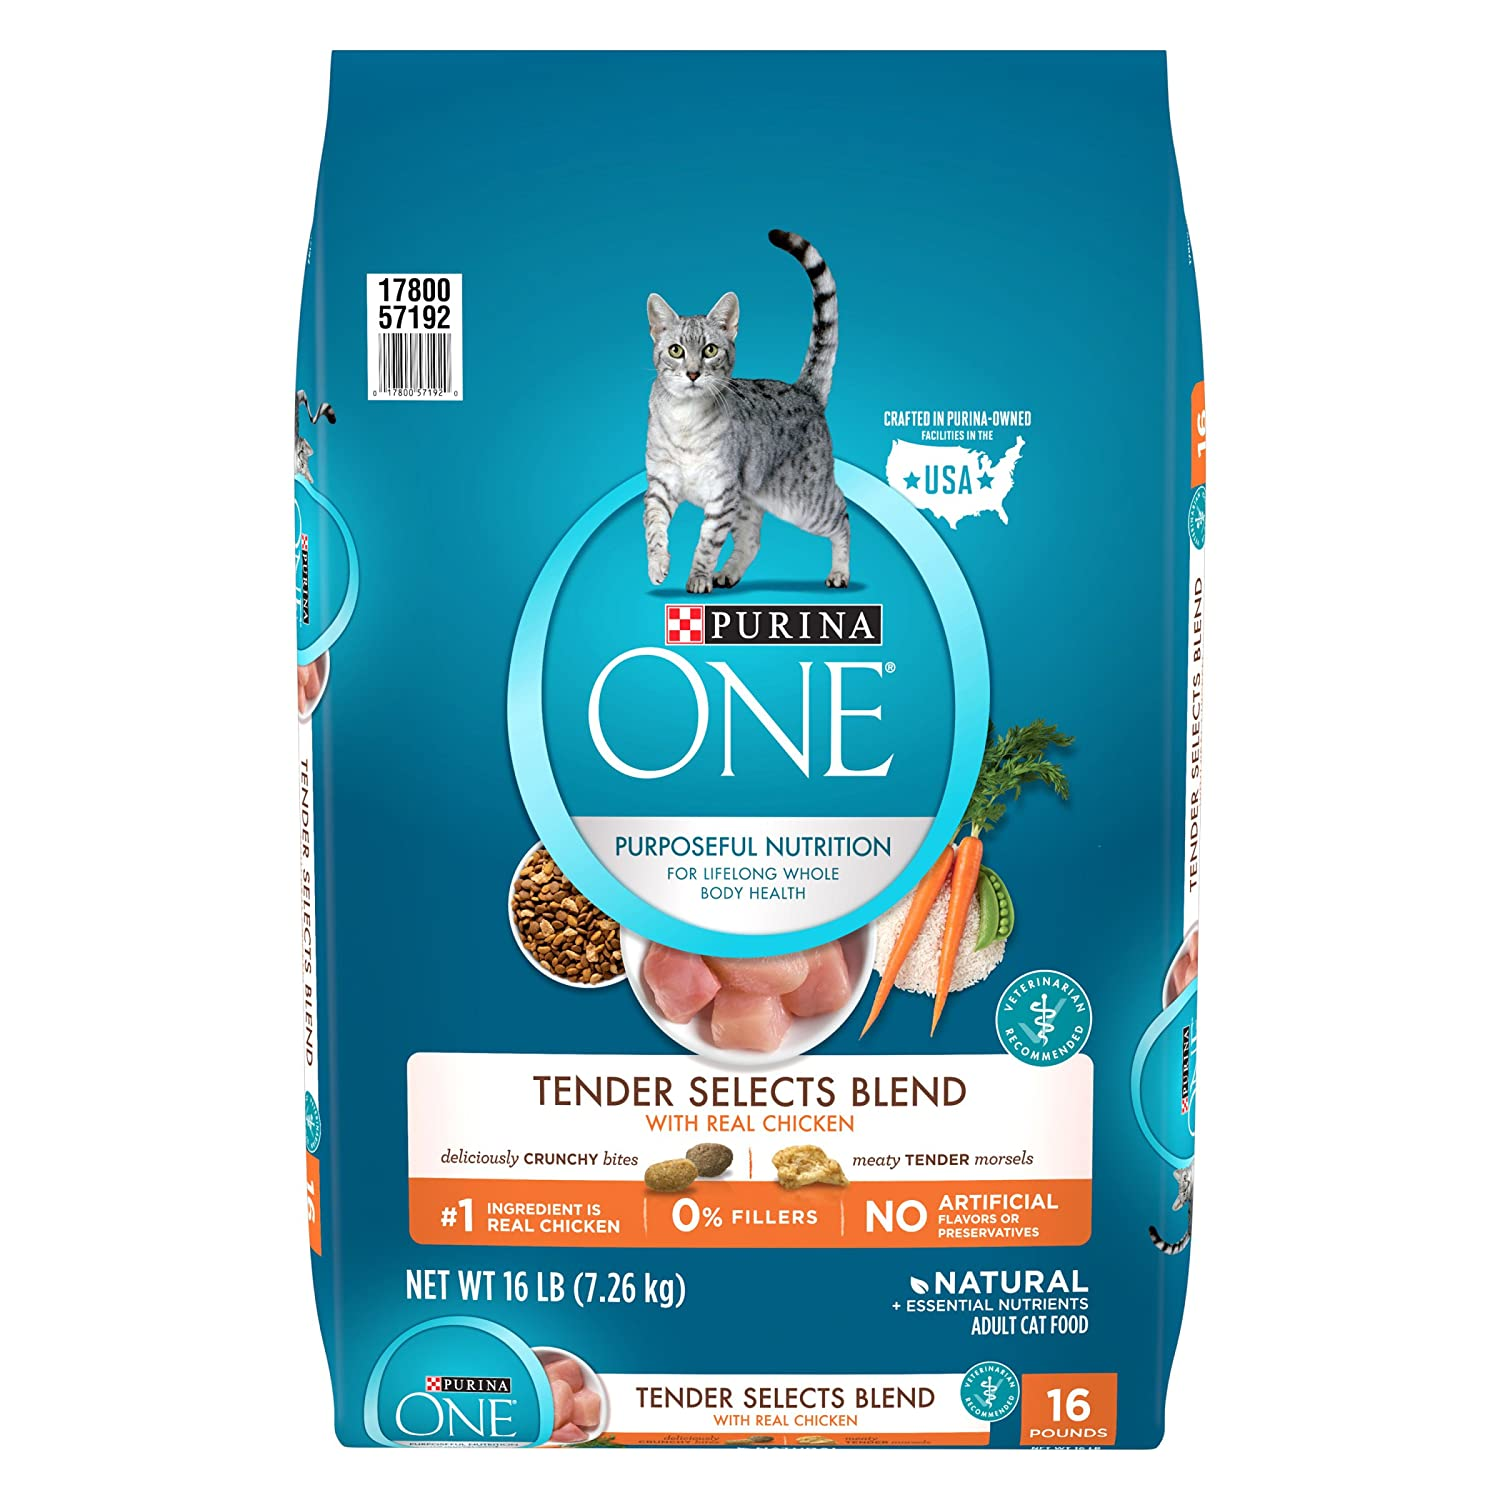 Purina ONE Tender Selects Blend